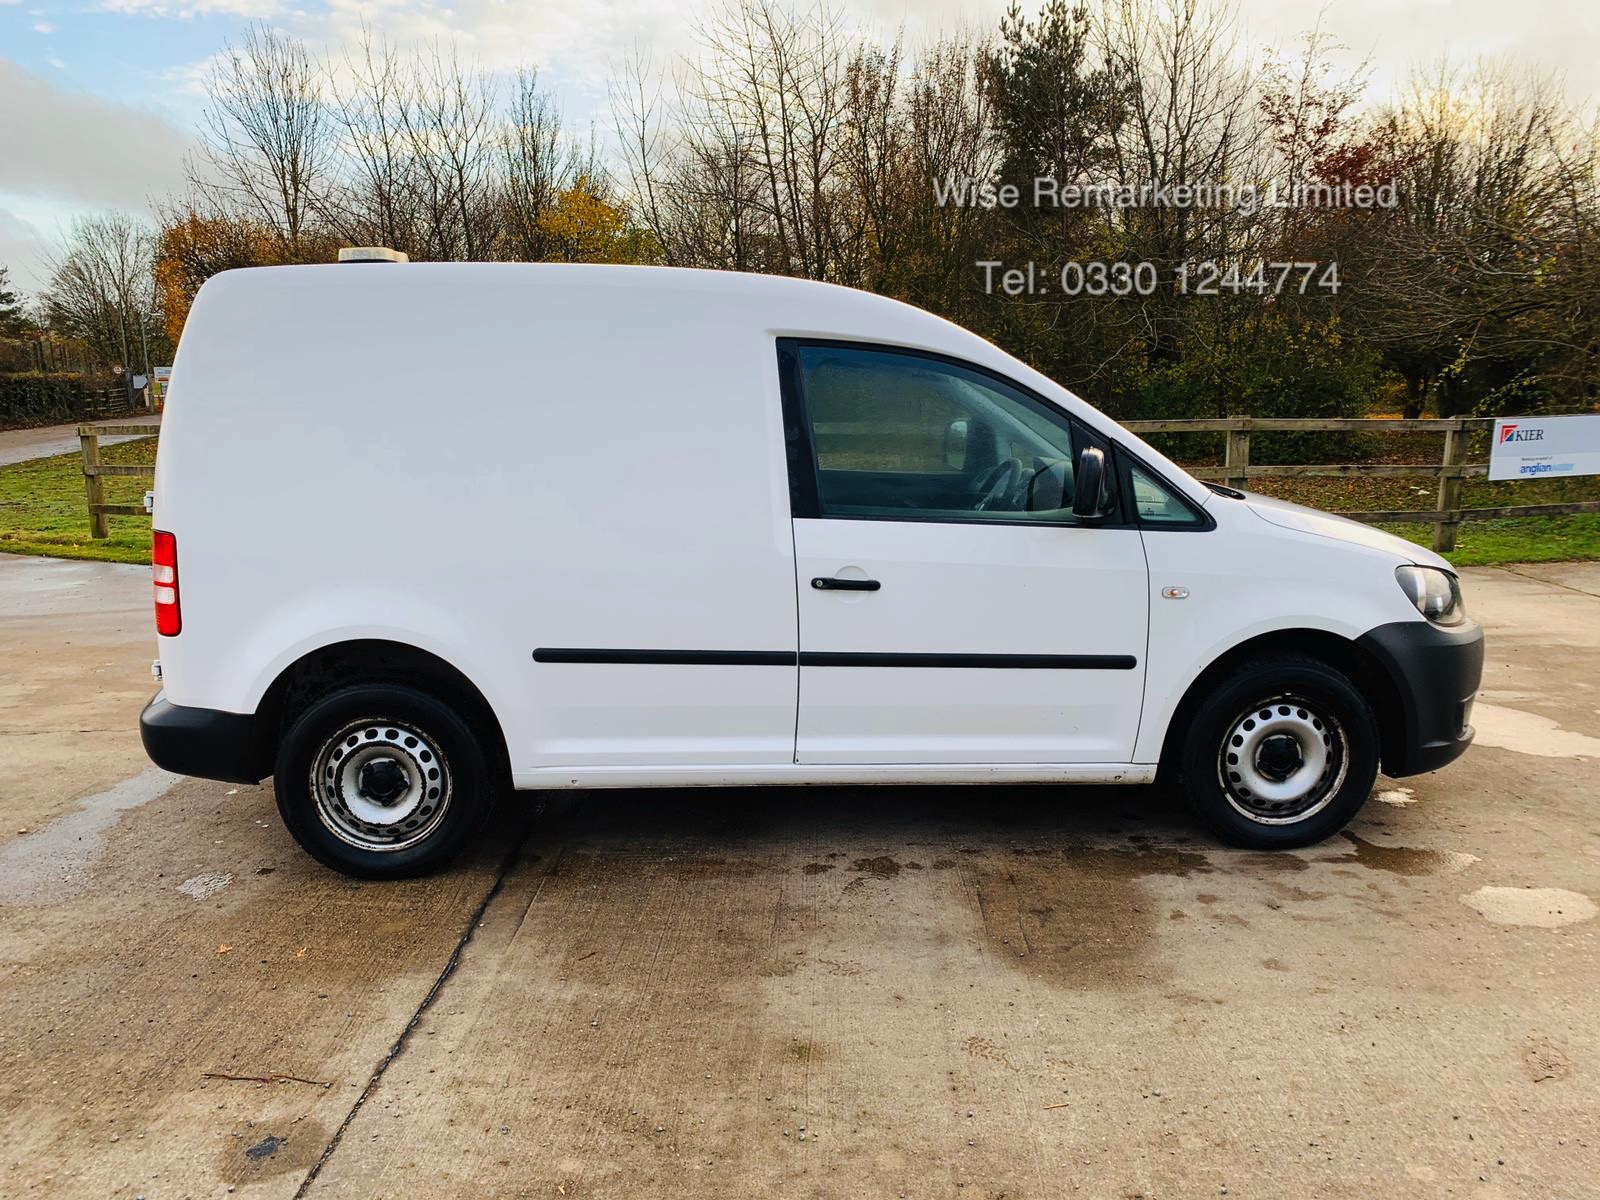 Volkswagen Caddy C20 1.6 TDI - 2012 Model - 1 Keeper From New - Side Loading Door - Ply Lined - Image 3 of 16